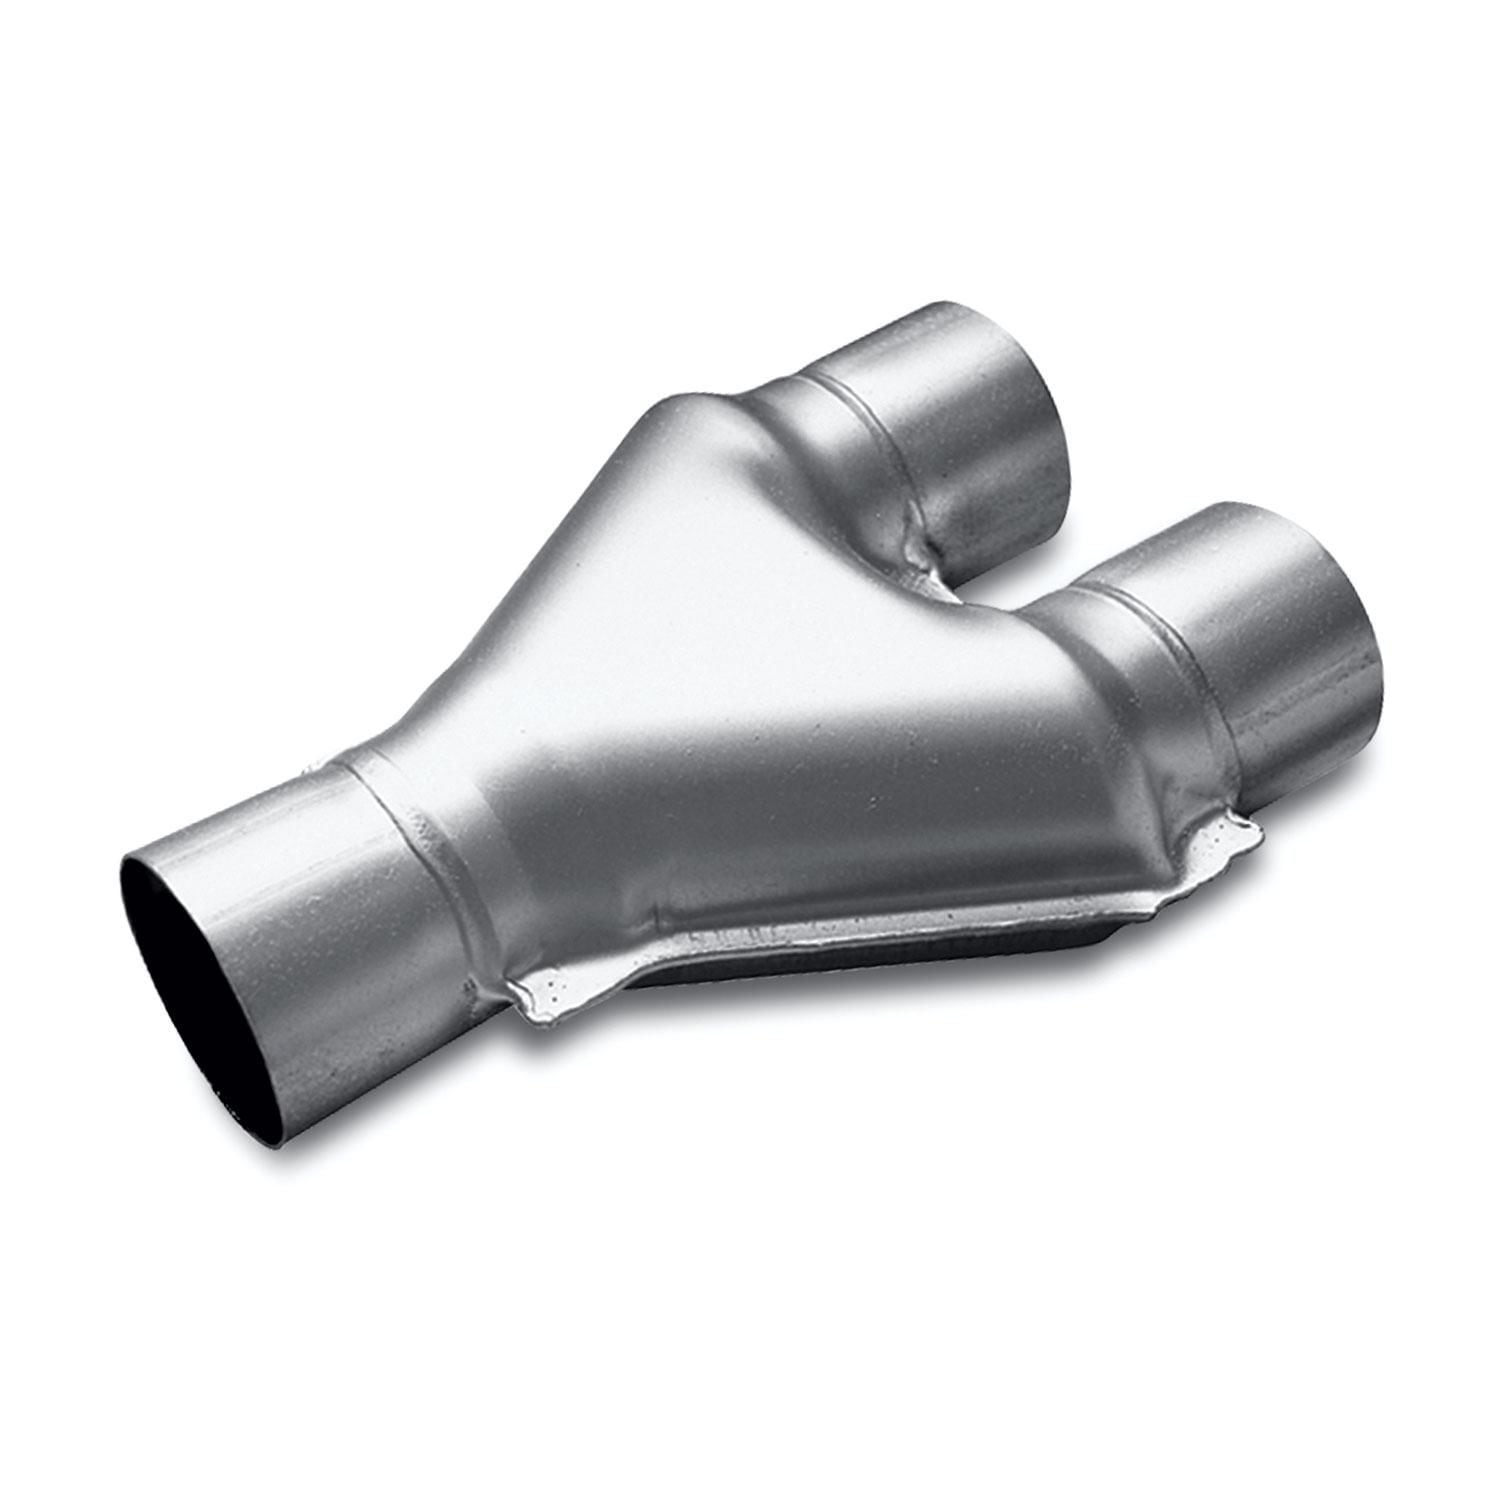 magnaflow exhaust products 10798 3in dual inlet x 3in single outlet exhaust pipe and adapter